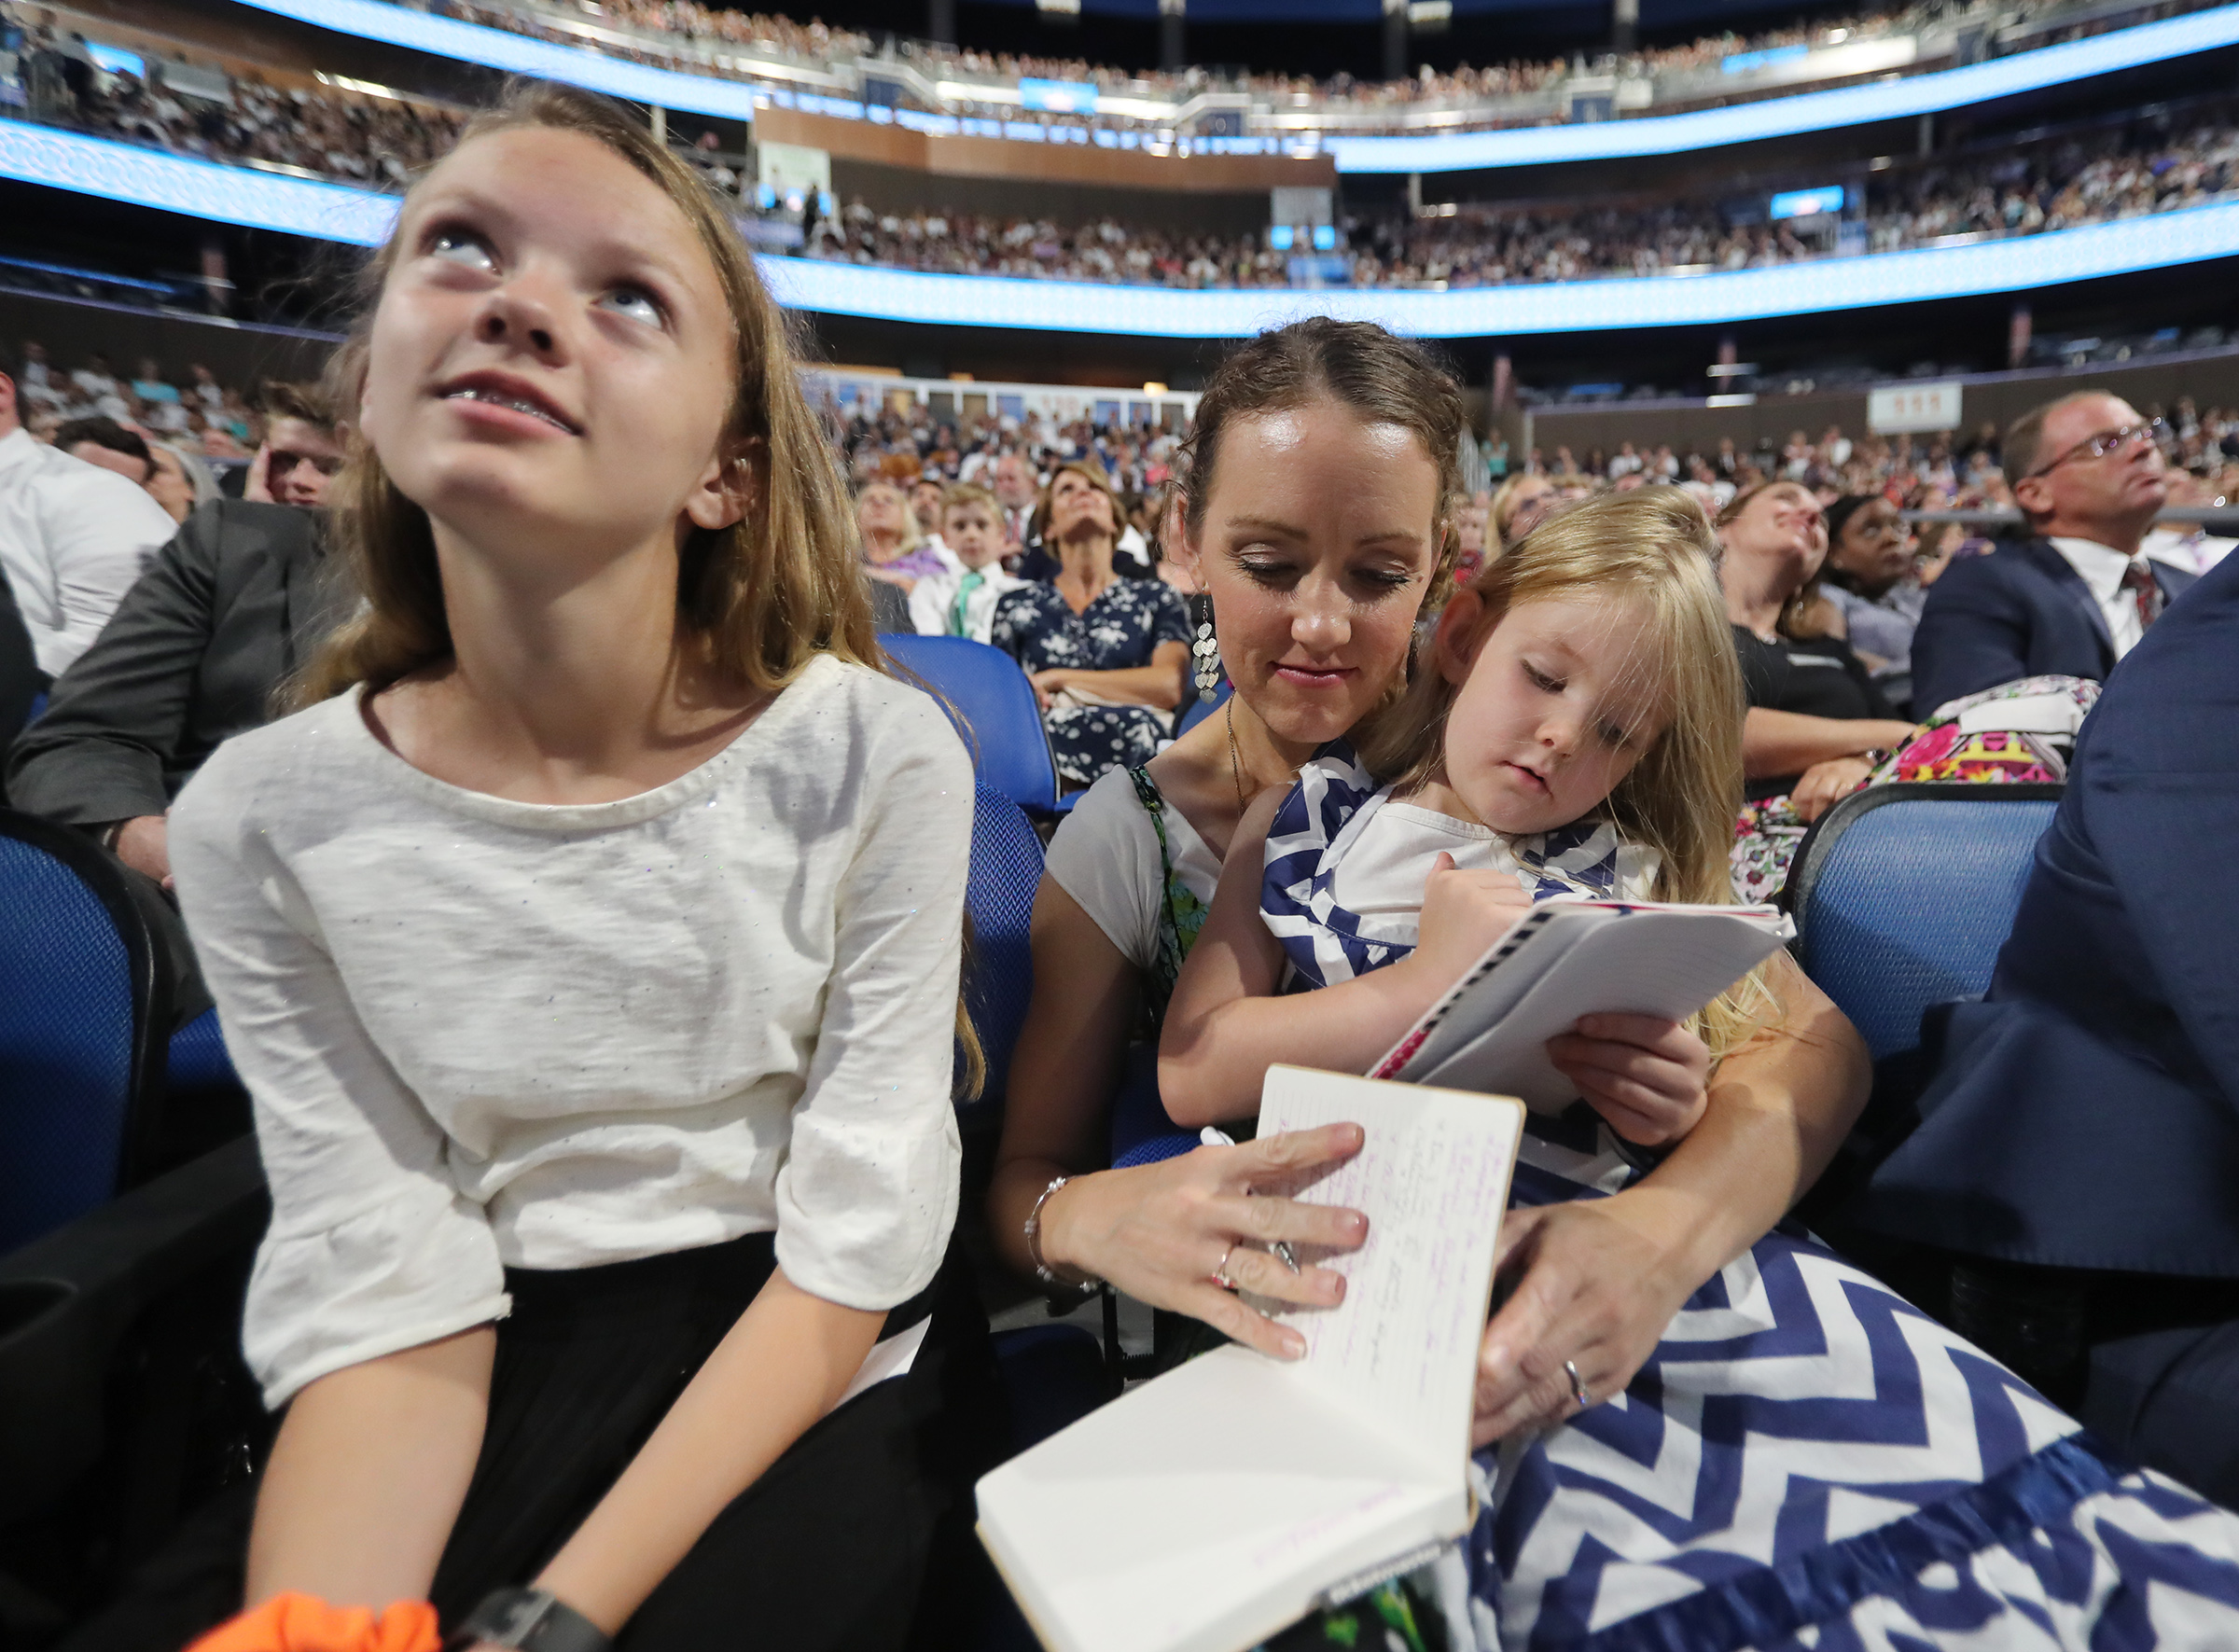 Juliette Ebbert, sits with her mom, Cheri Ebbert, and sister Sadie Ebbert and listen as President Russell M. Nelson and others speak at the Amway Center in Orlando, Florida, on Sunday, June 9, 2019.